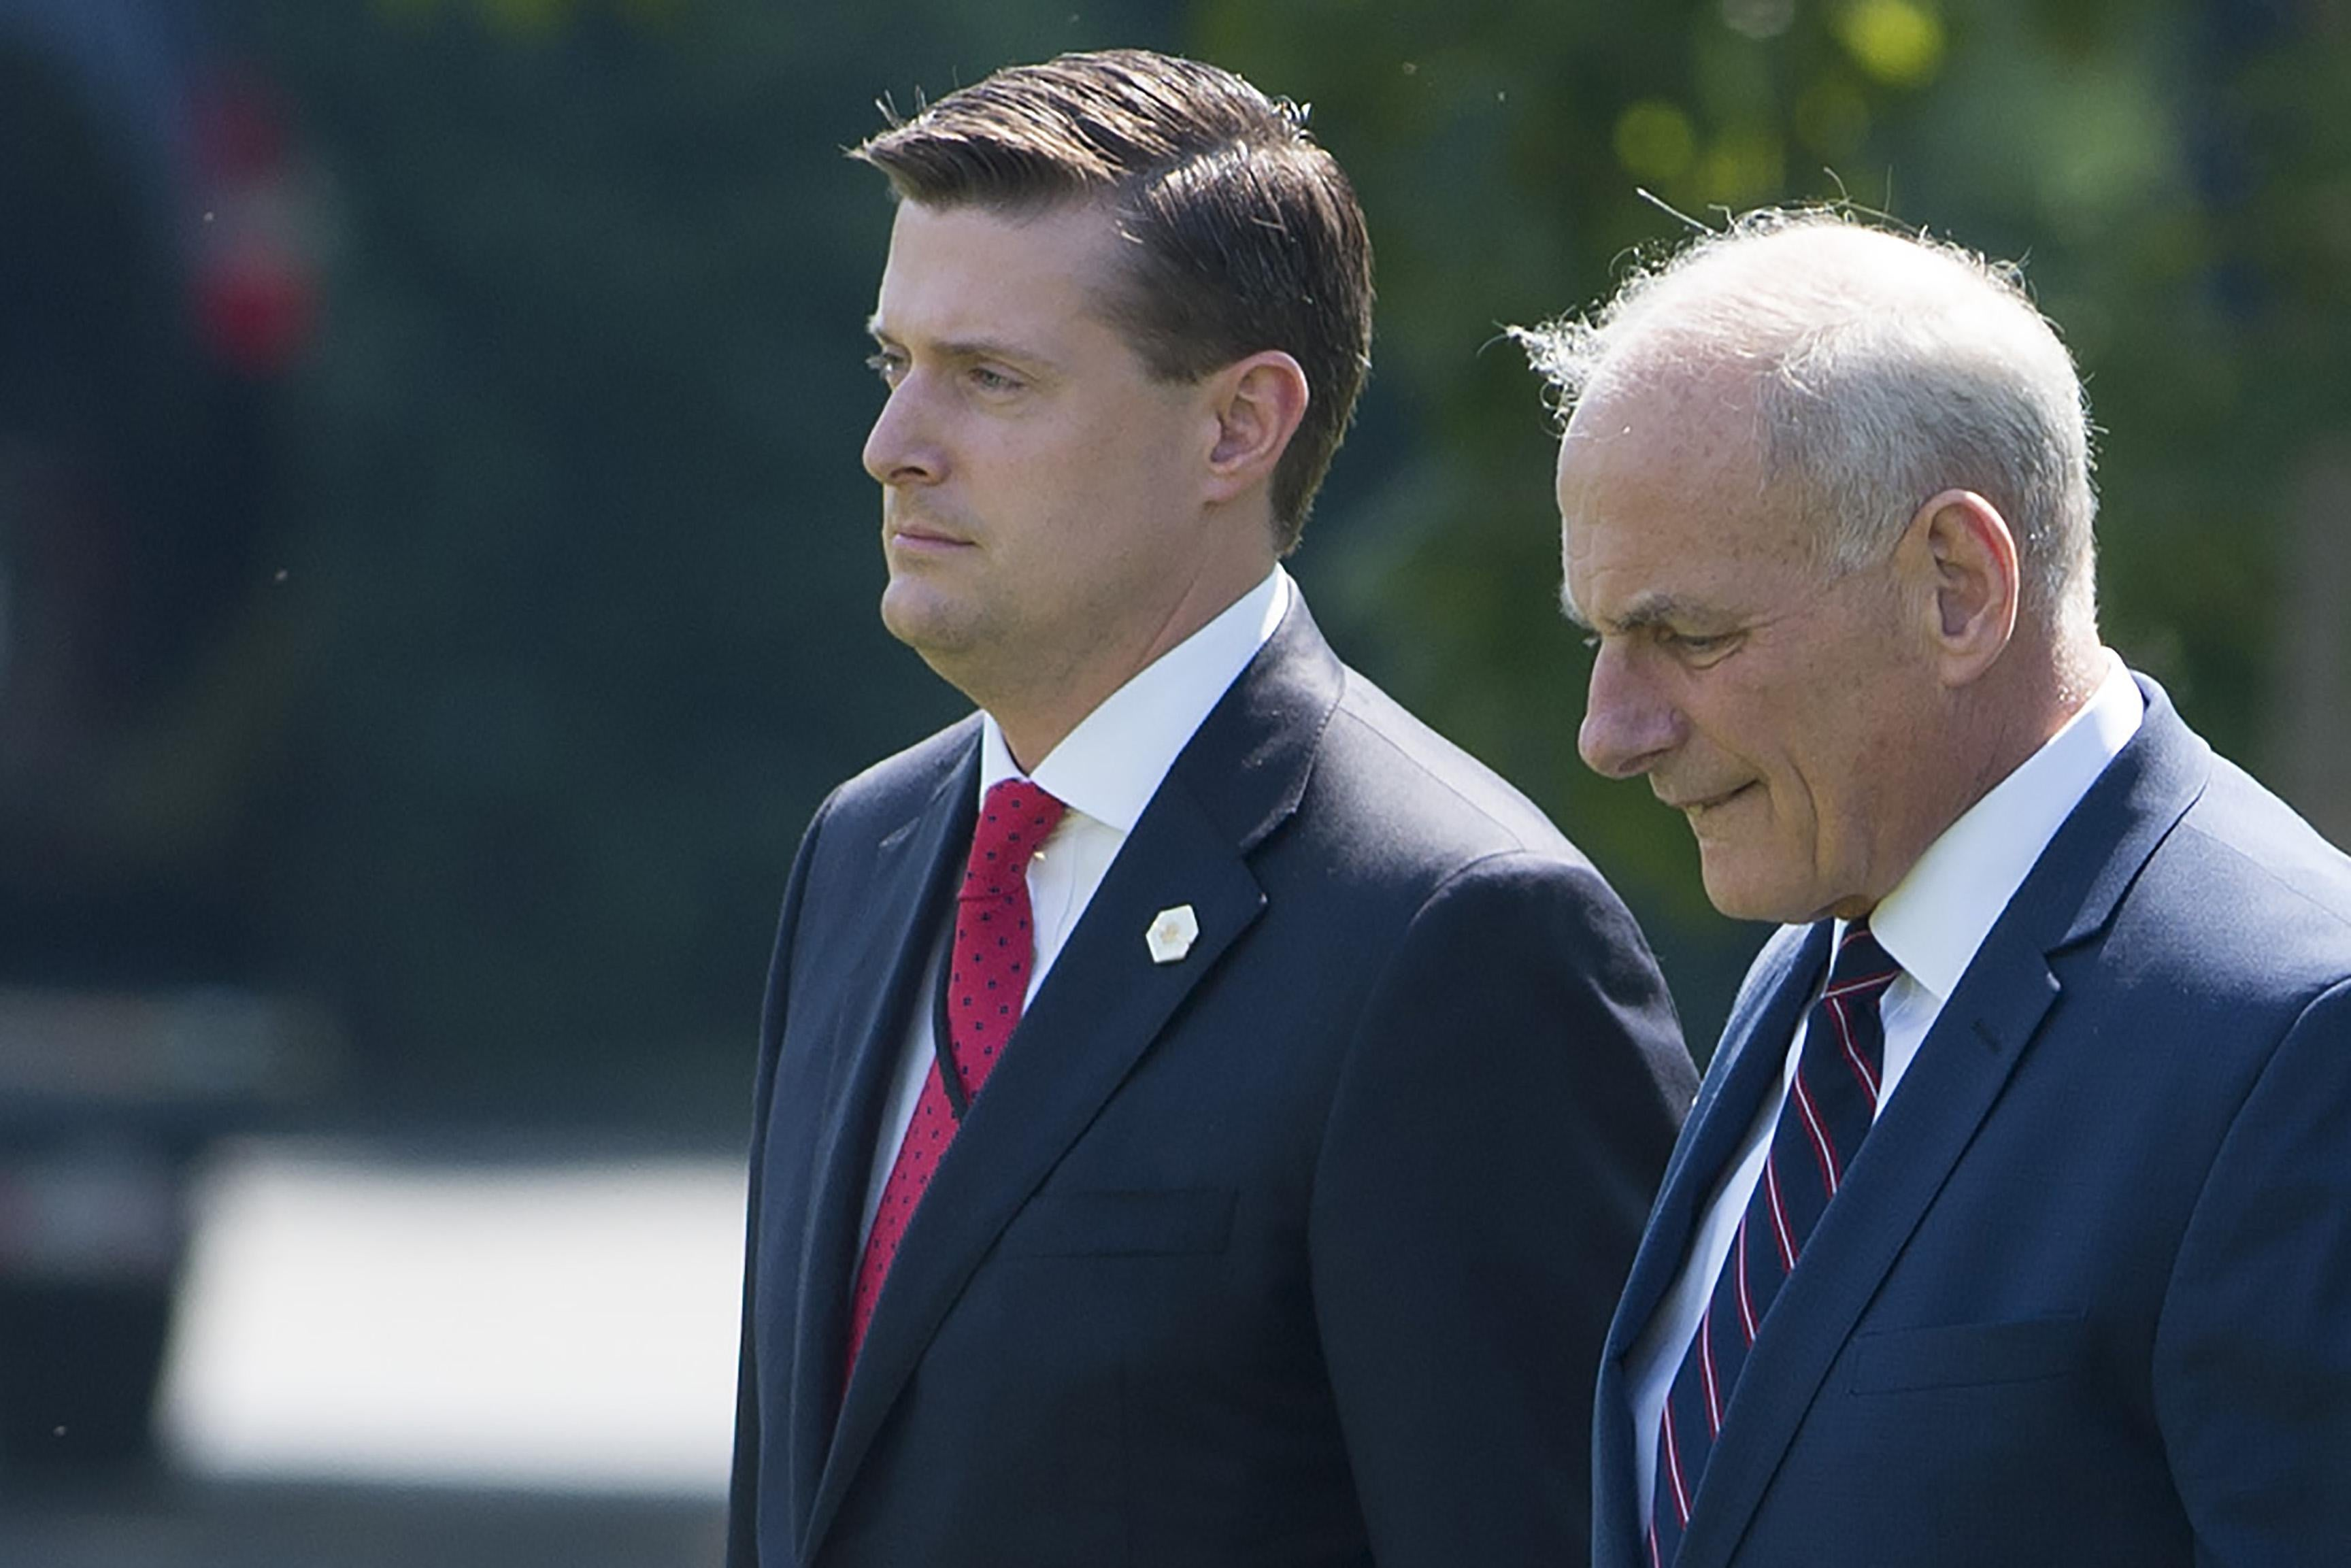 White House Chief of Staff John Kelly (R) and Former White House Staff Secretary Rob Porter (L) outside the White House on August 4, 2017.